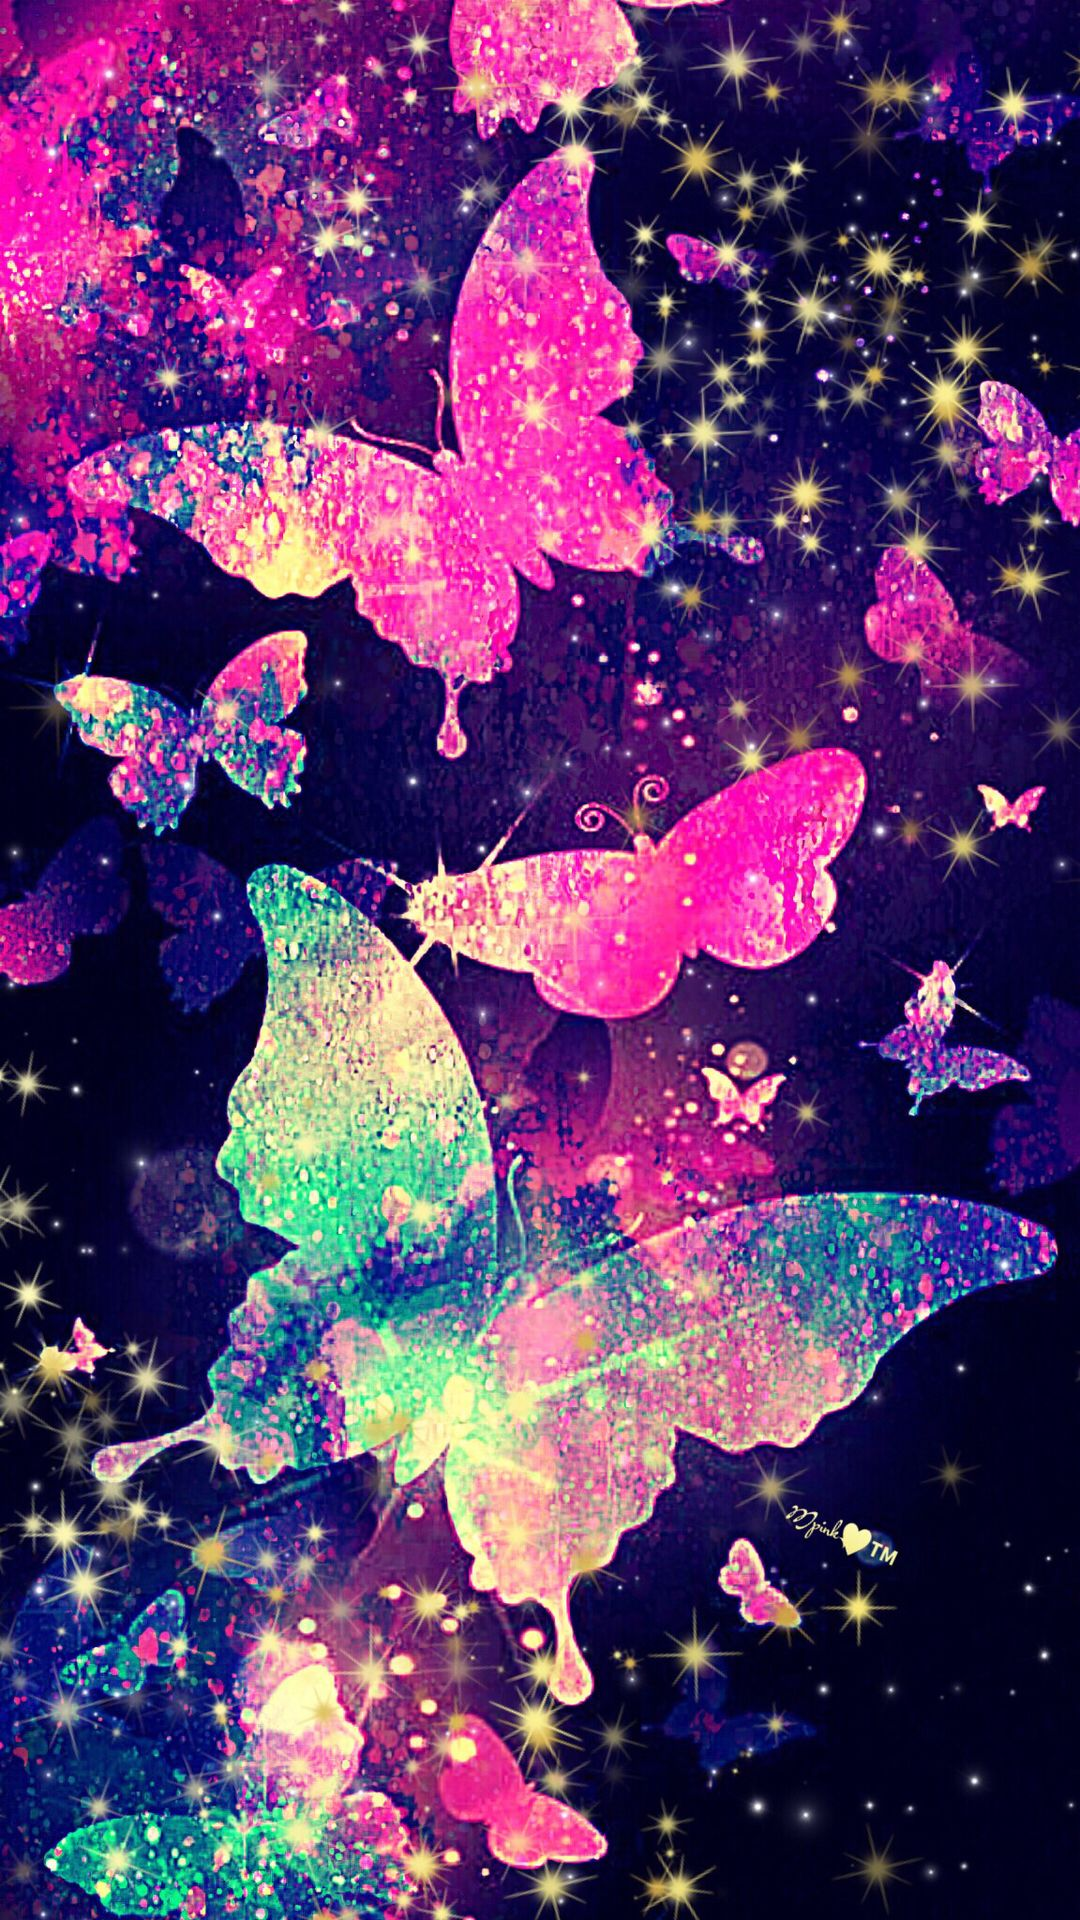 Blingee Cute Wallpaper Image By Mali A On All That Glitters Butterfly Wallpaper